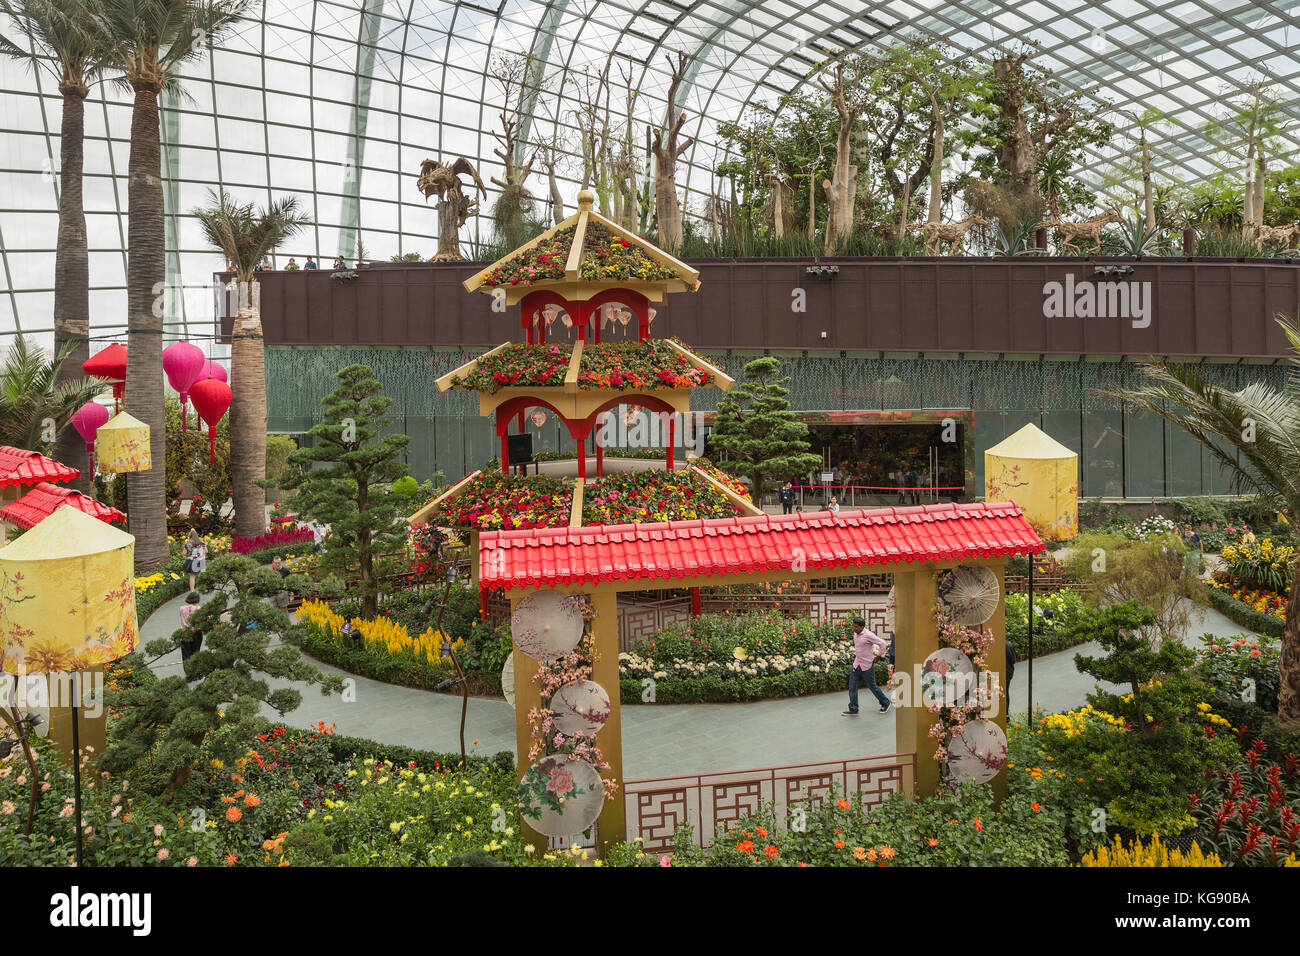 Inside a greenhouse at gardens by the bay Stock Photo: 164925694 - Alamy